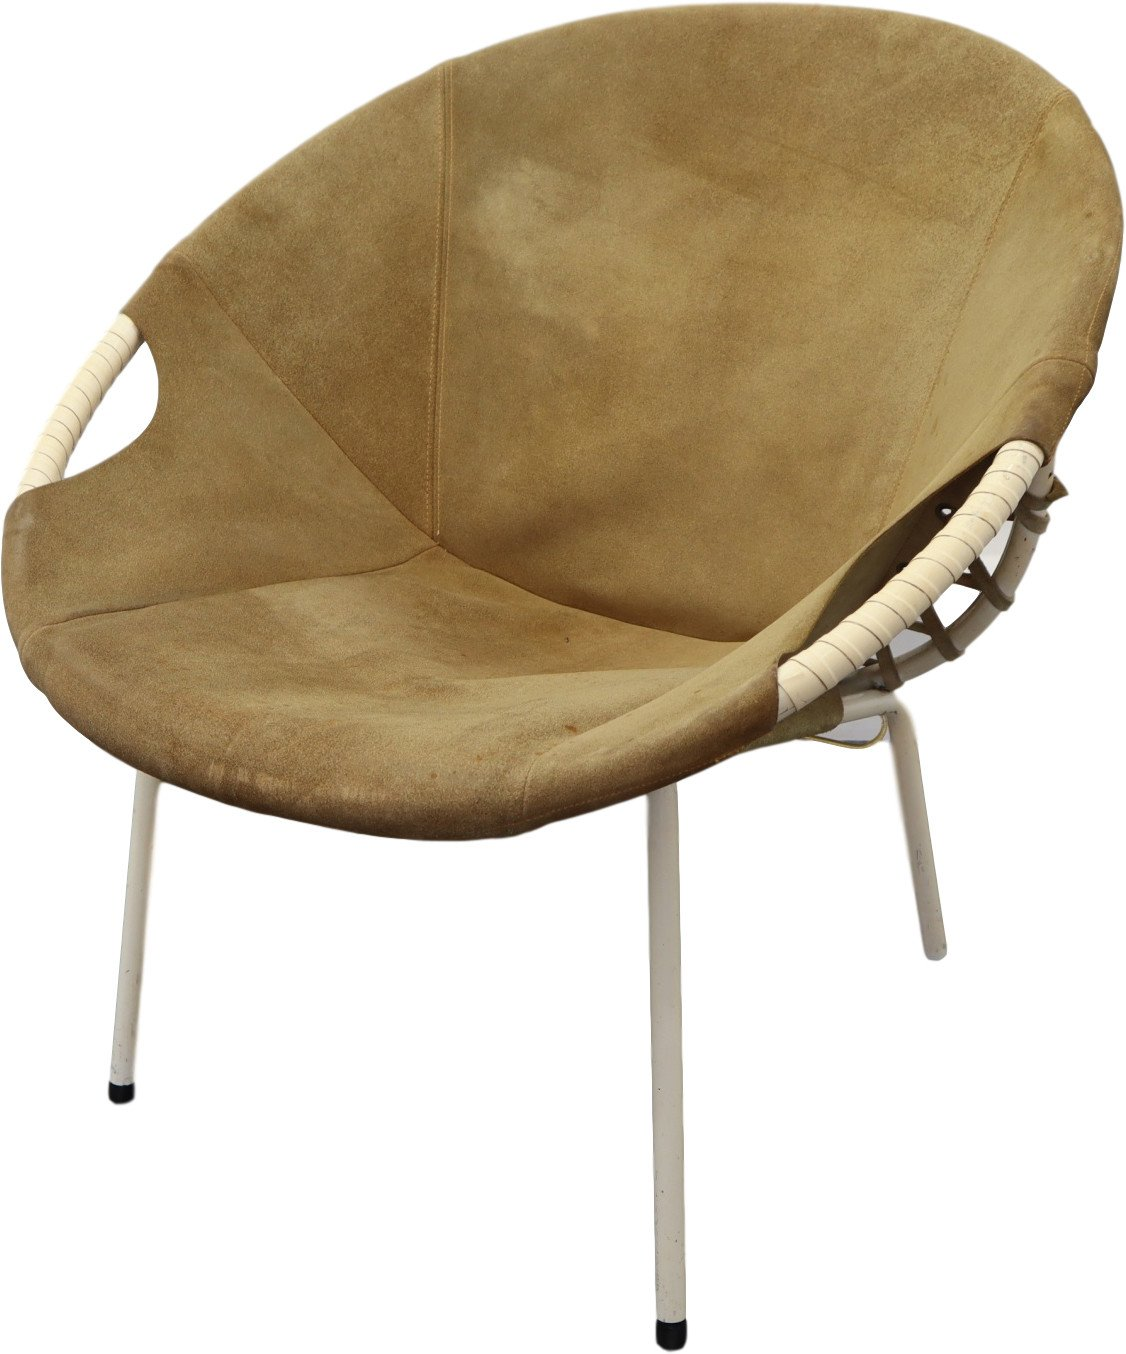 Armchair by E. Lusch for Lusch & Co., Germany, 1970s